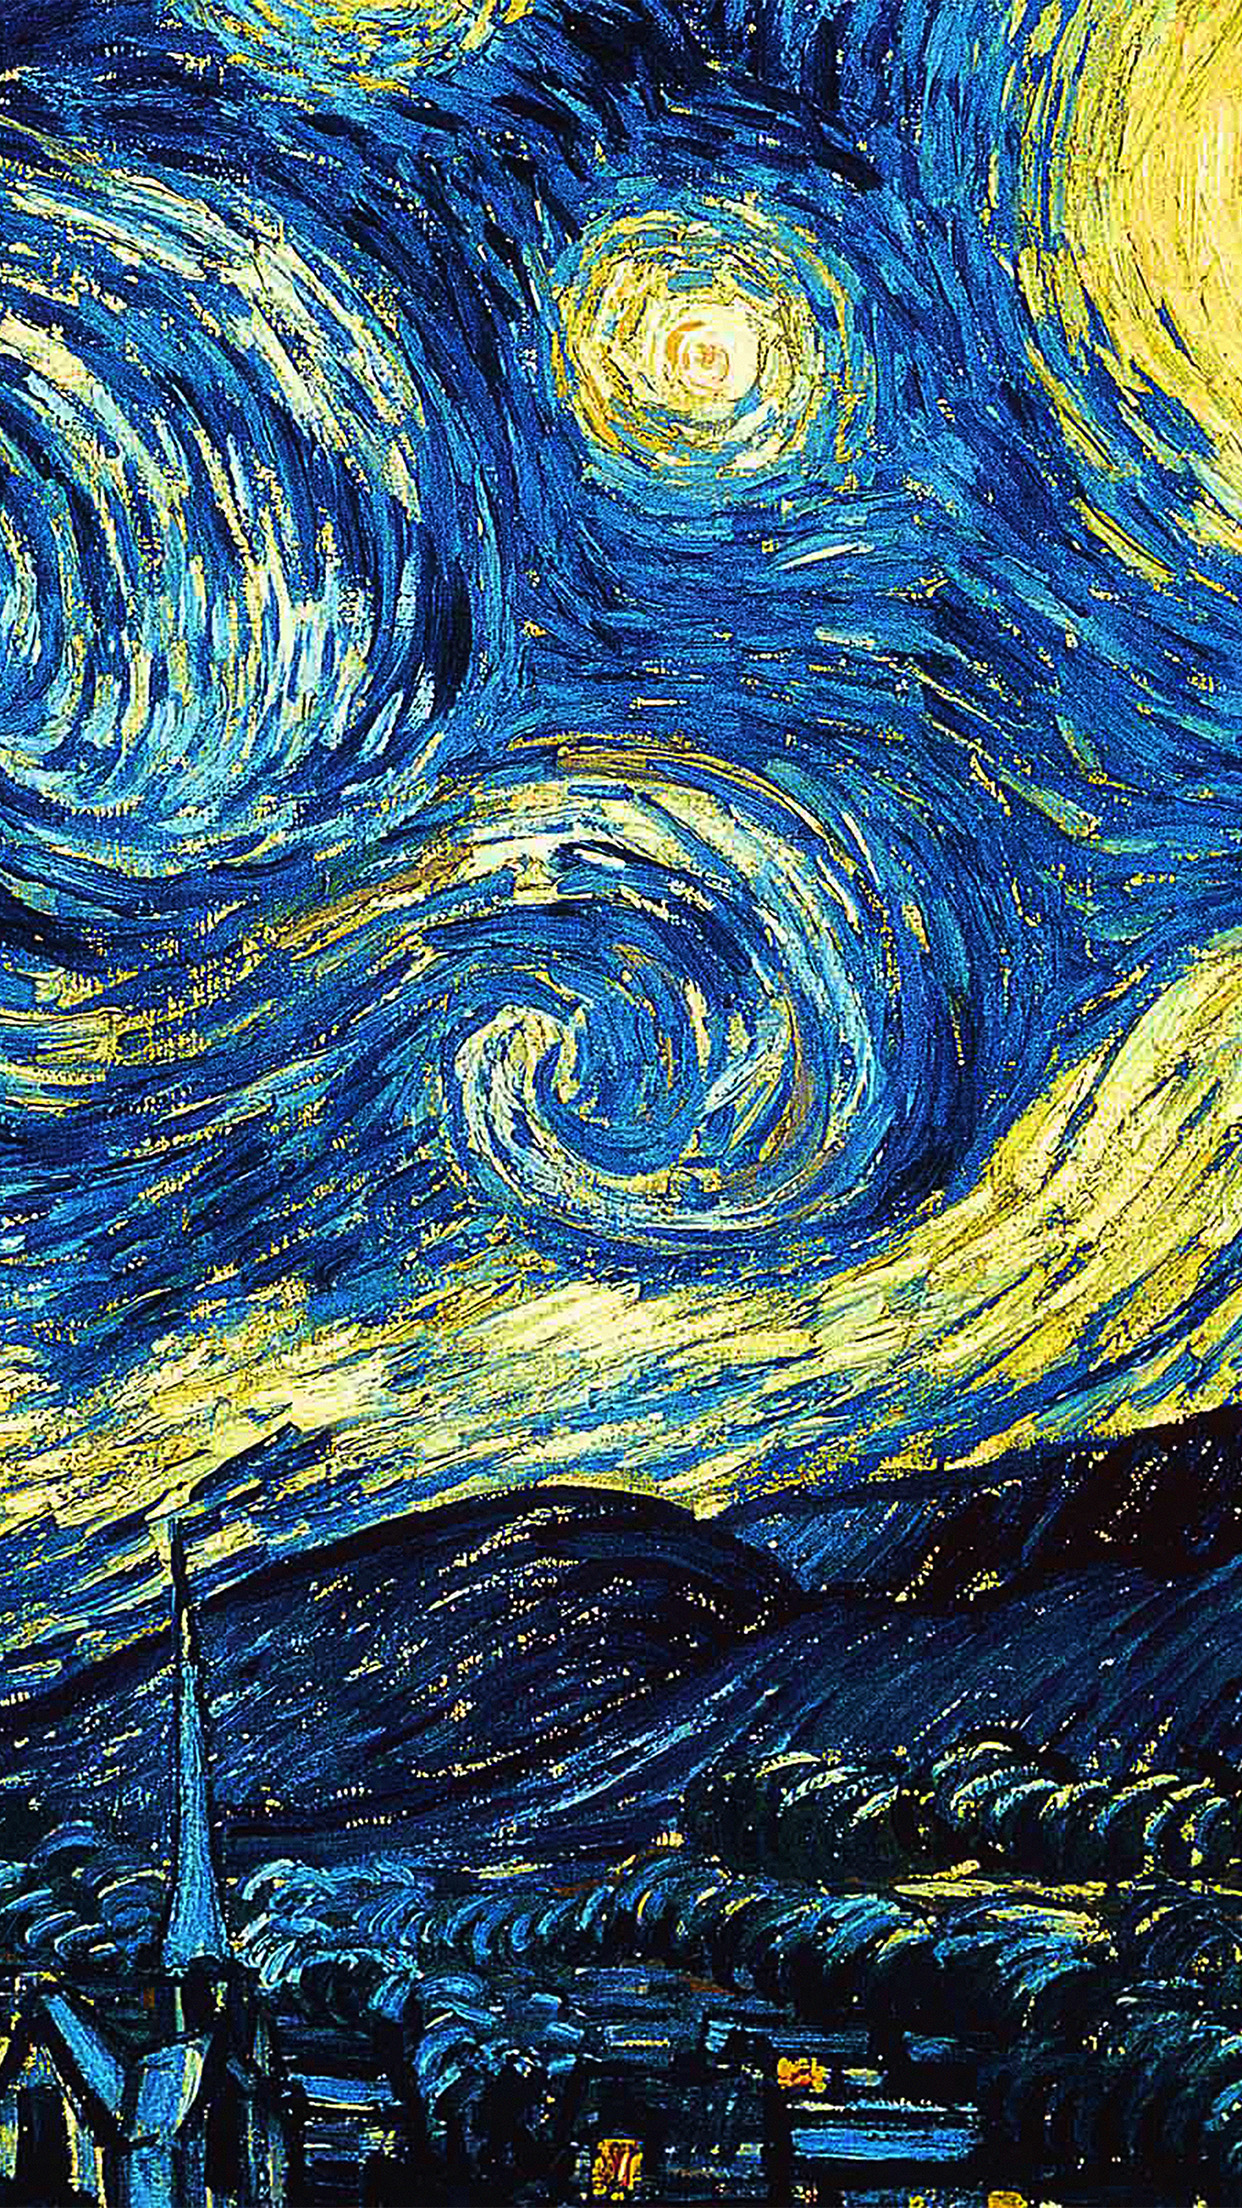 starry night descriptive essay Starry night over the rhone descriptive essay, creative writing description of a storm, creative writing exercises 2nd grade gave up on the essay and am watching the flintstones instead, much more productive use of my time.